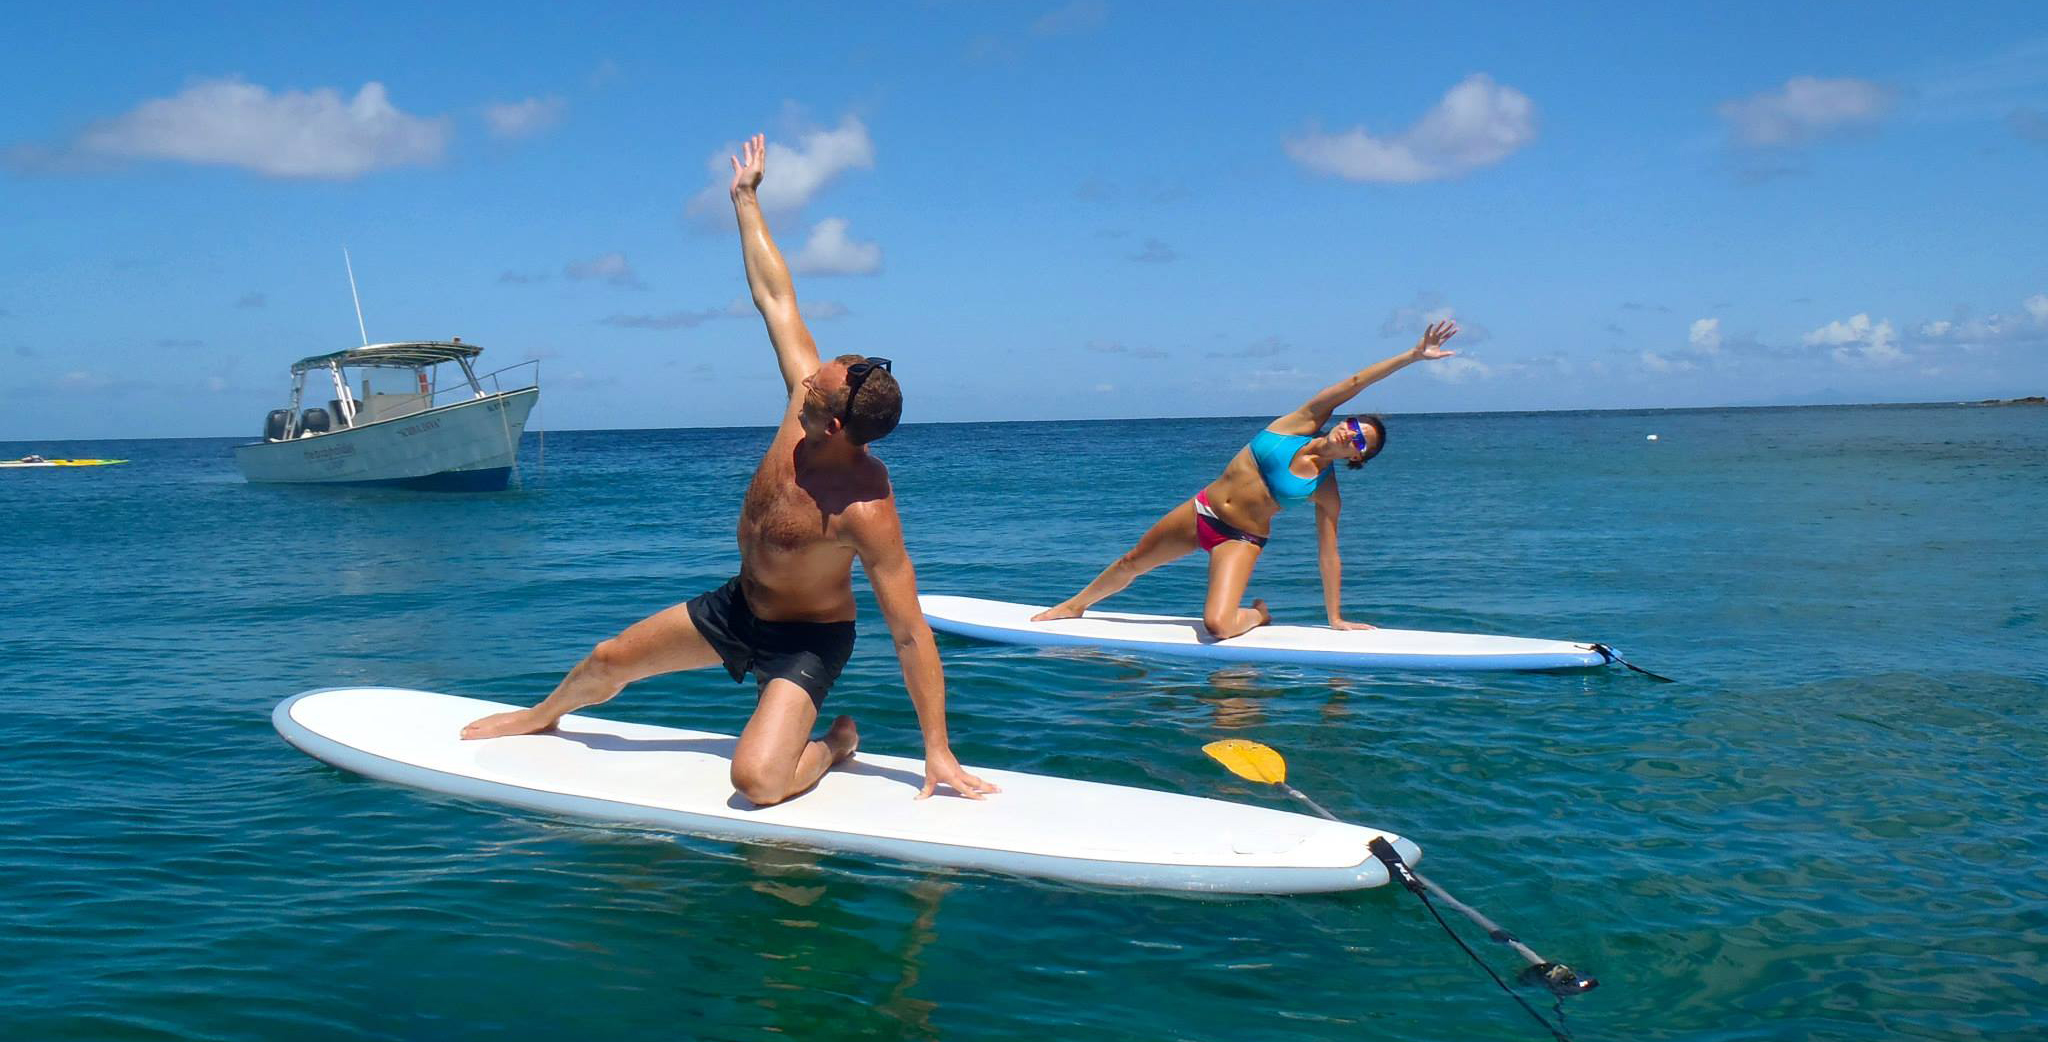 SUP yoga at the bodyholiday